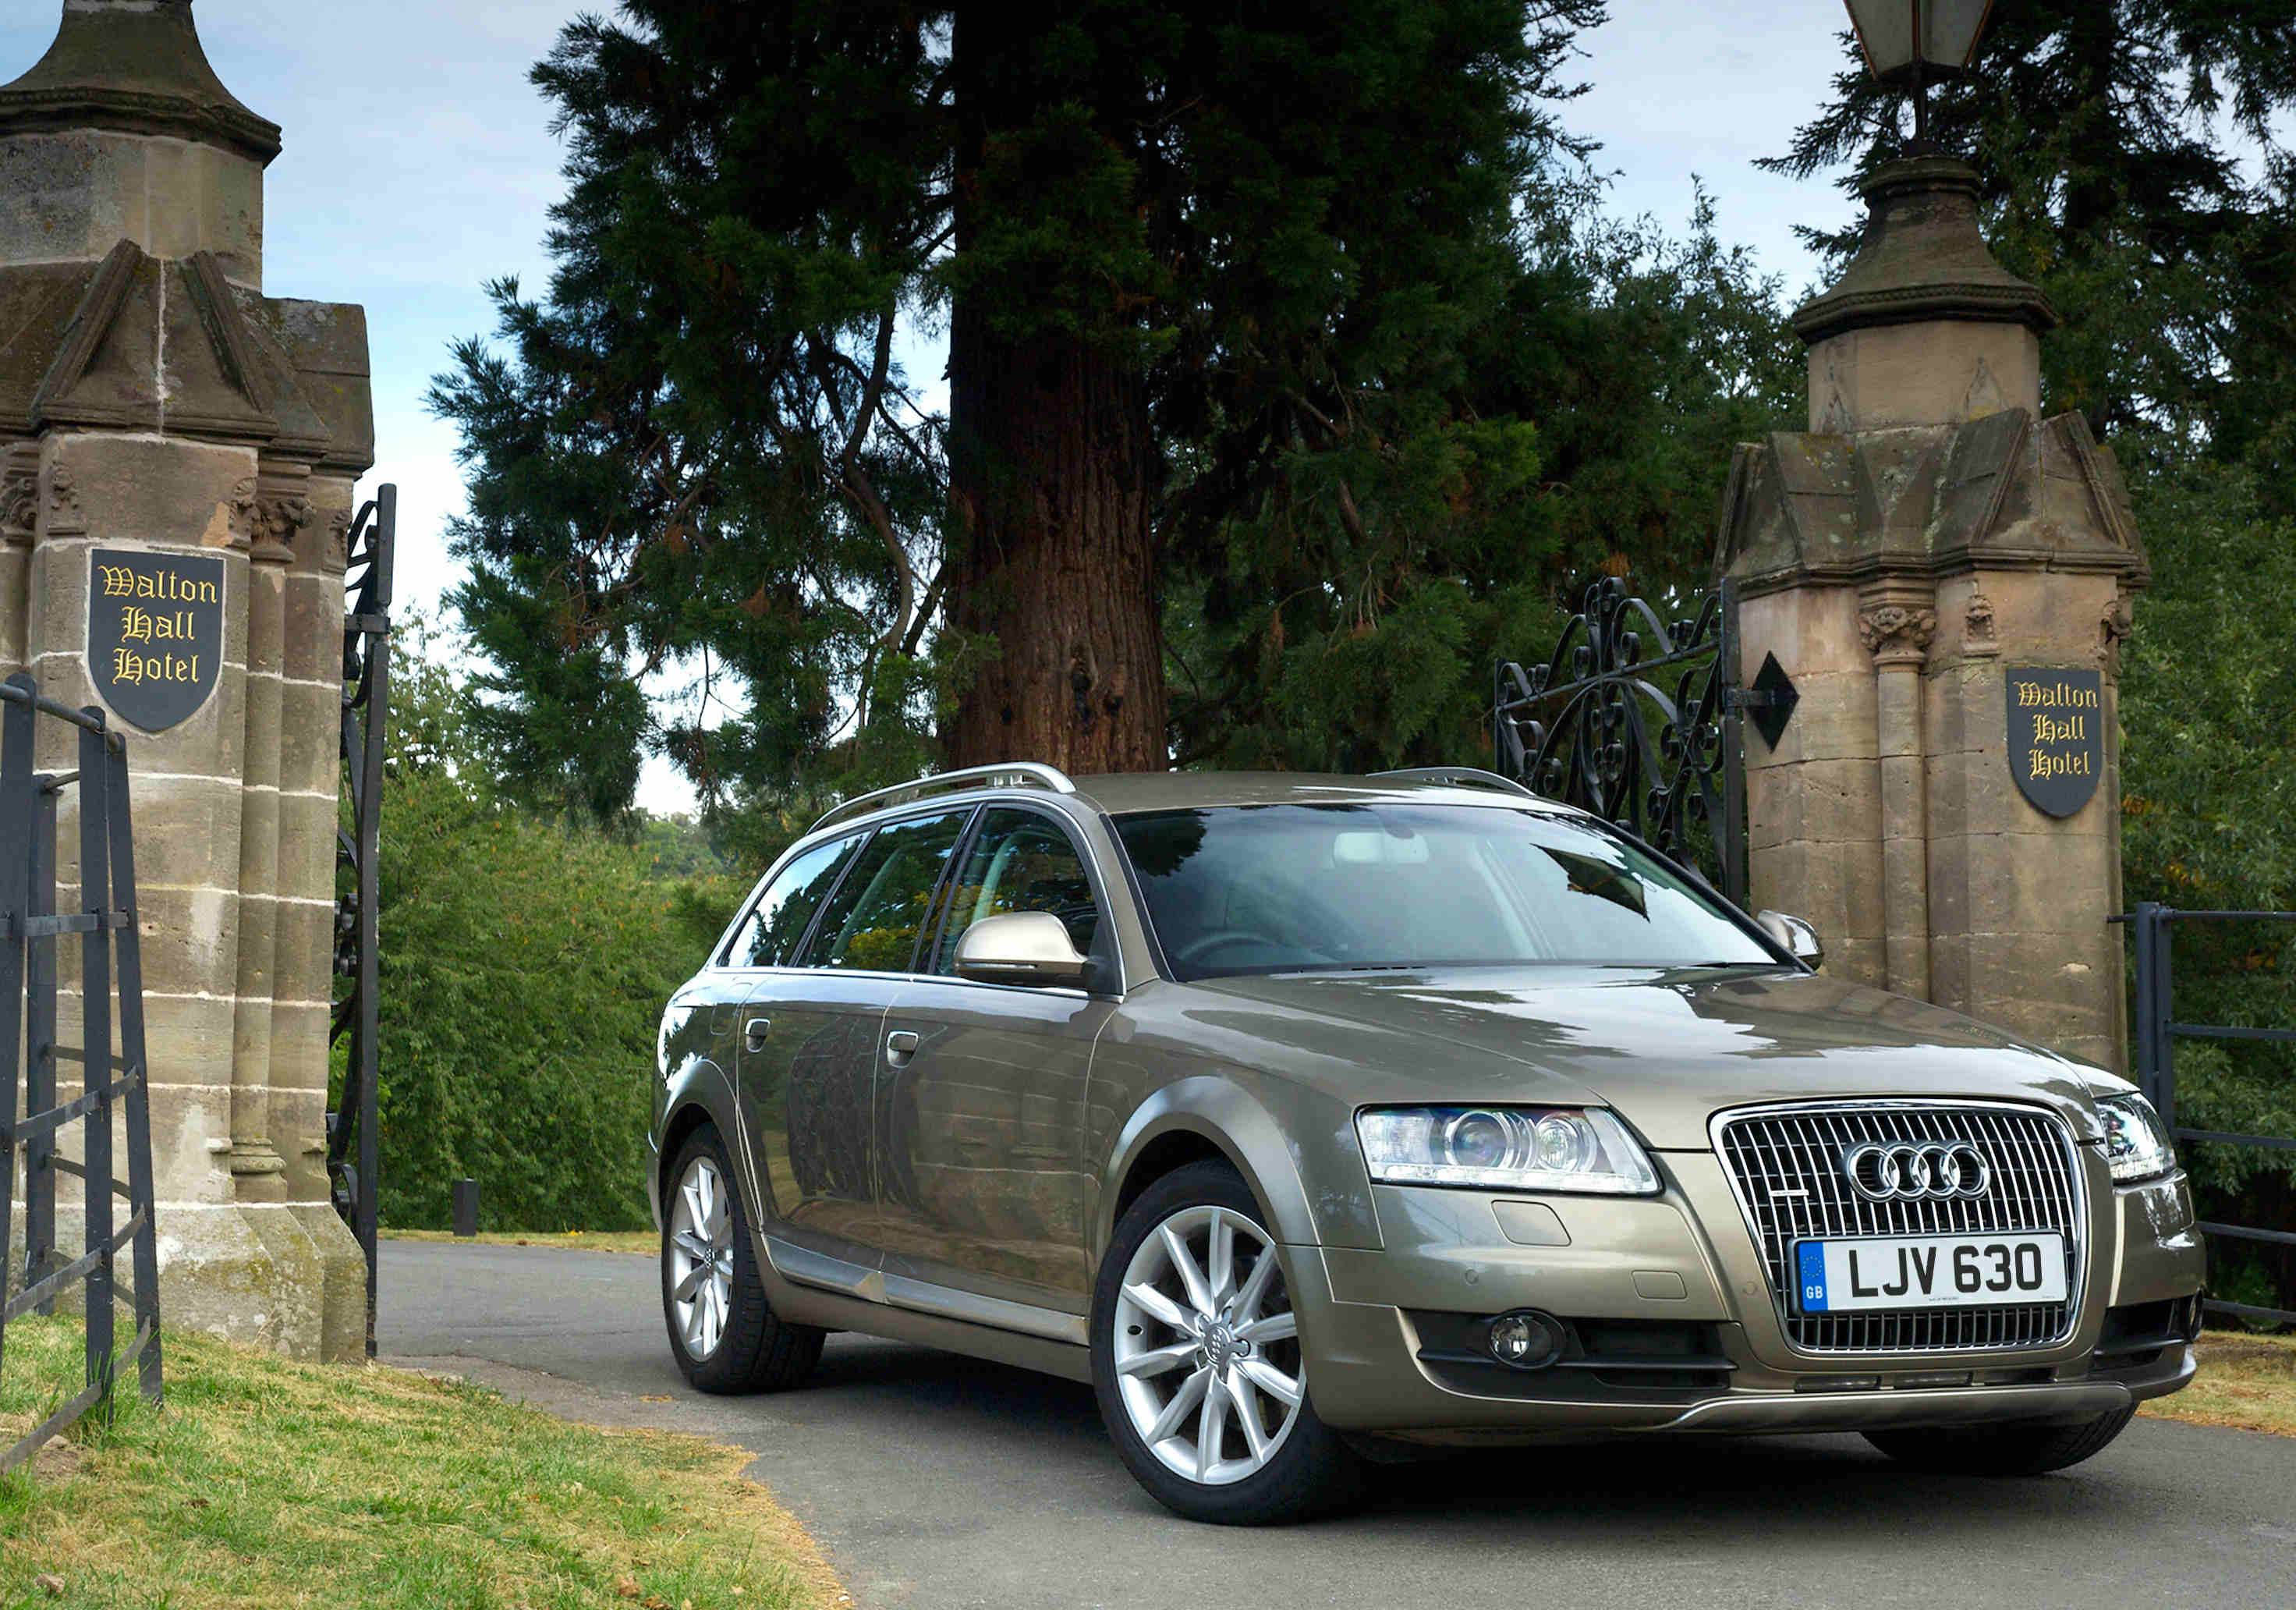 image of an audi a6 allroad car exterior